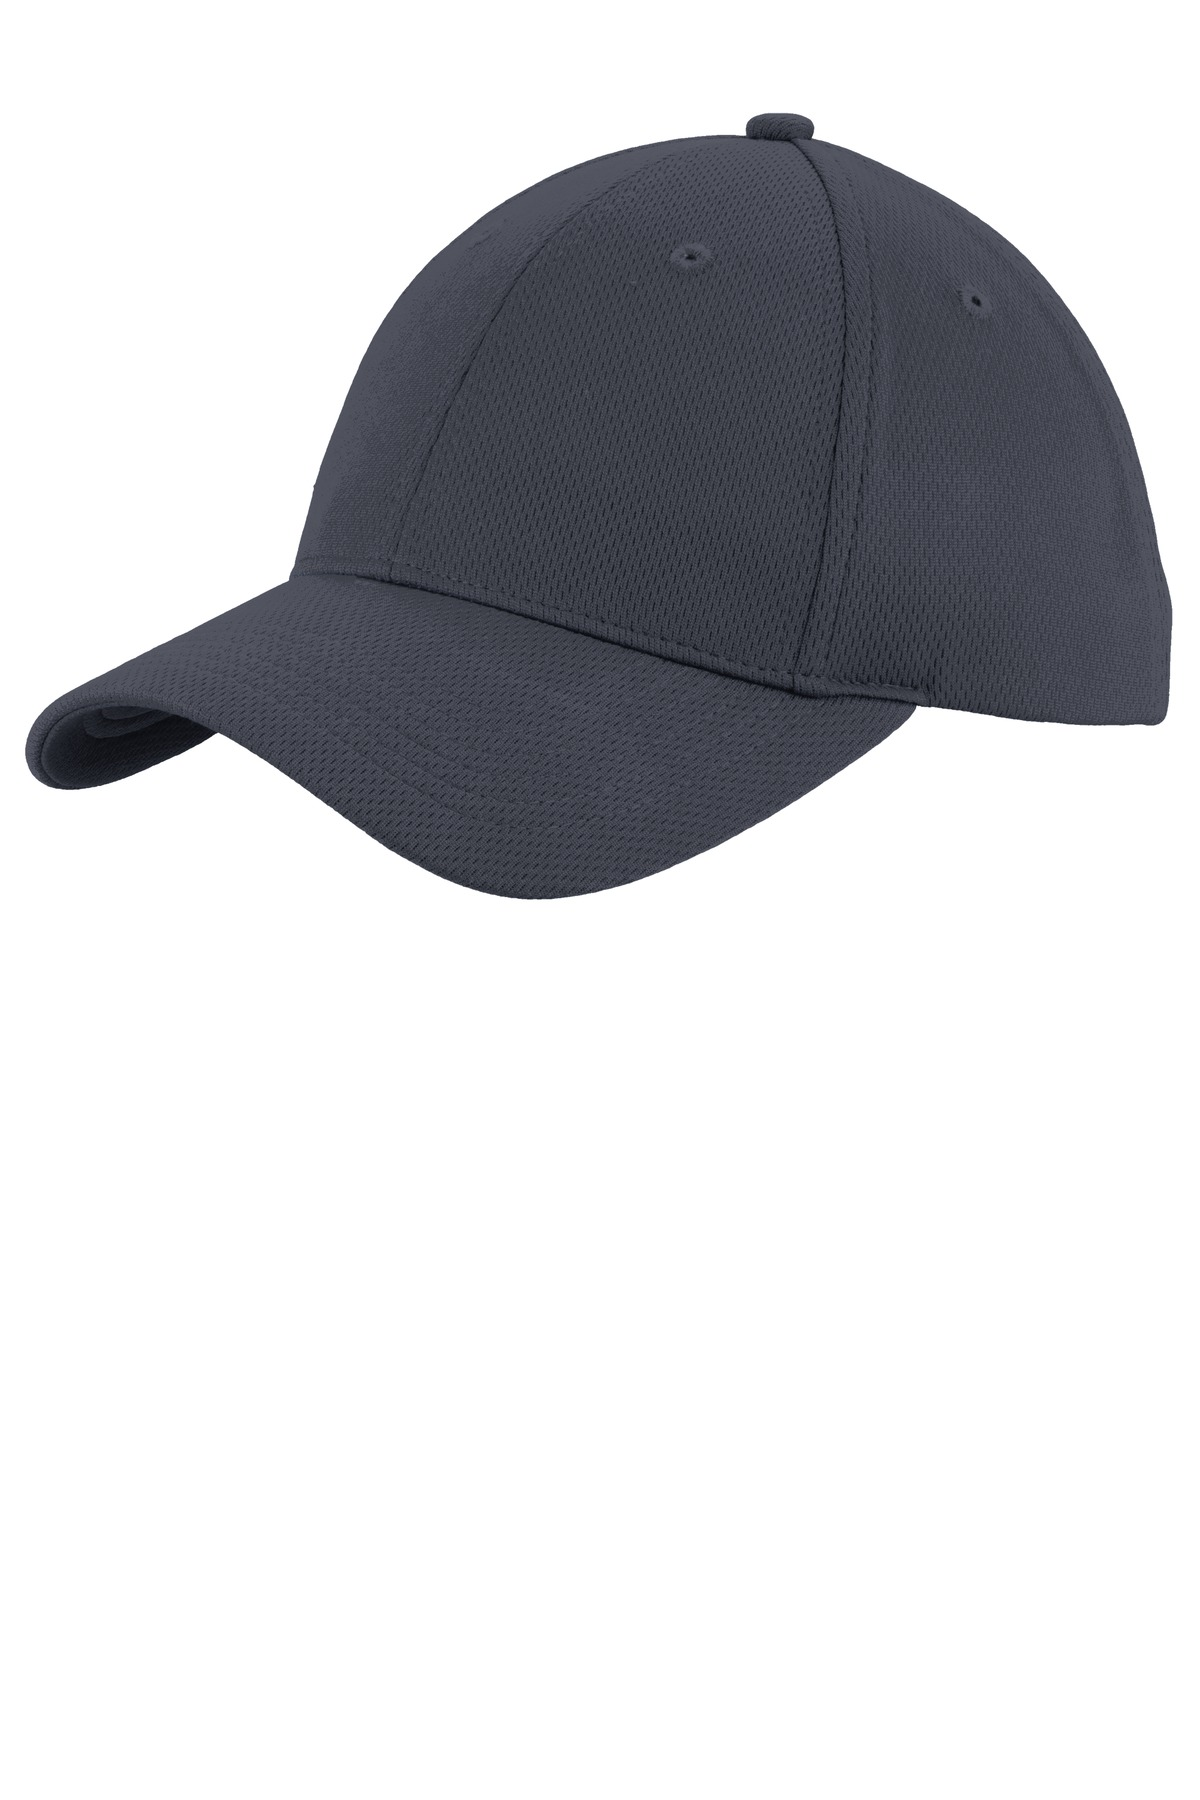 Sport-Tek ®  Youth PosiCharge ®  RacerMesh ®  Cap. YSTC26 - Graphite Grey